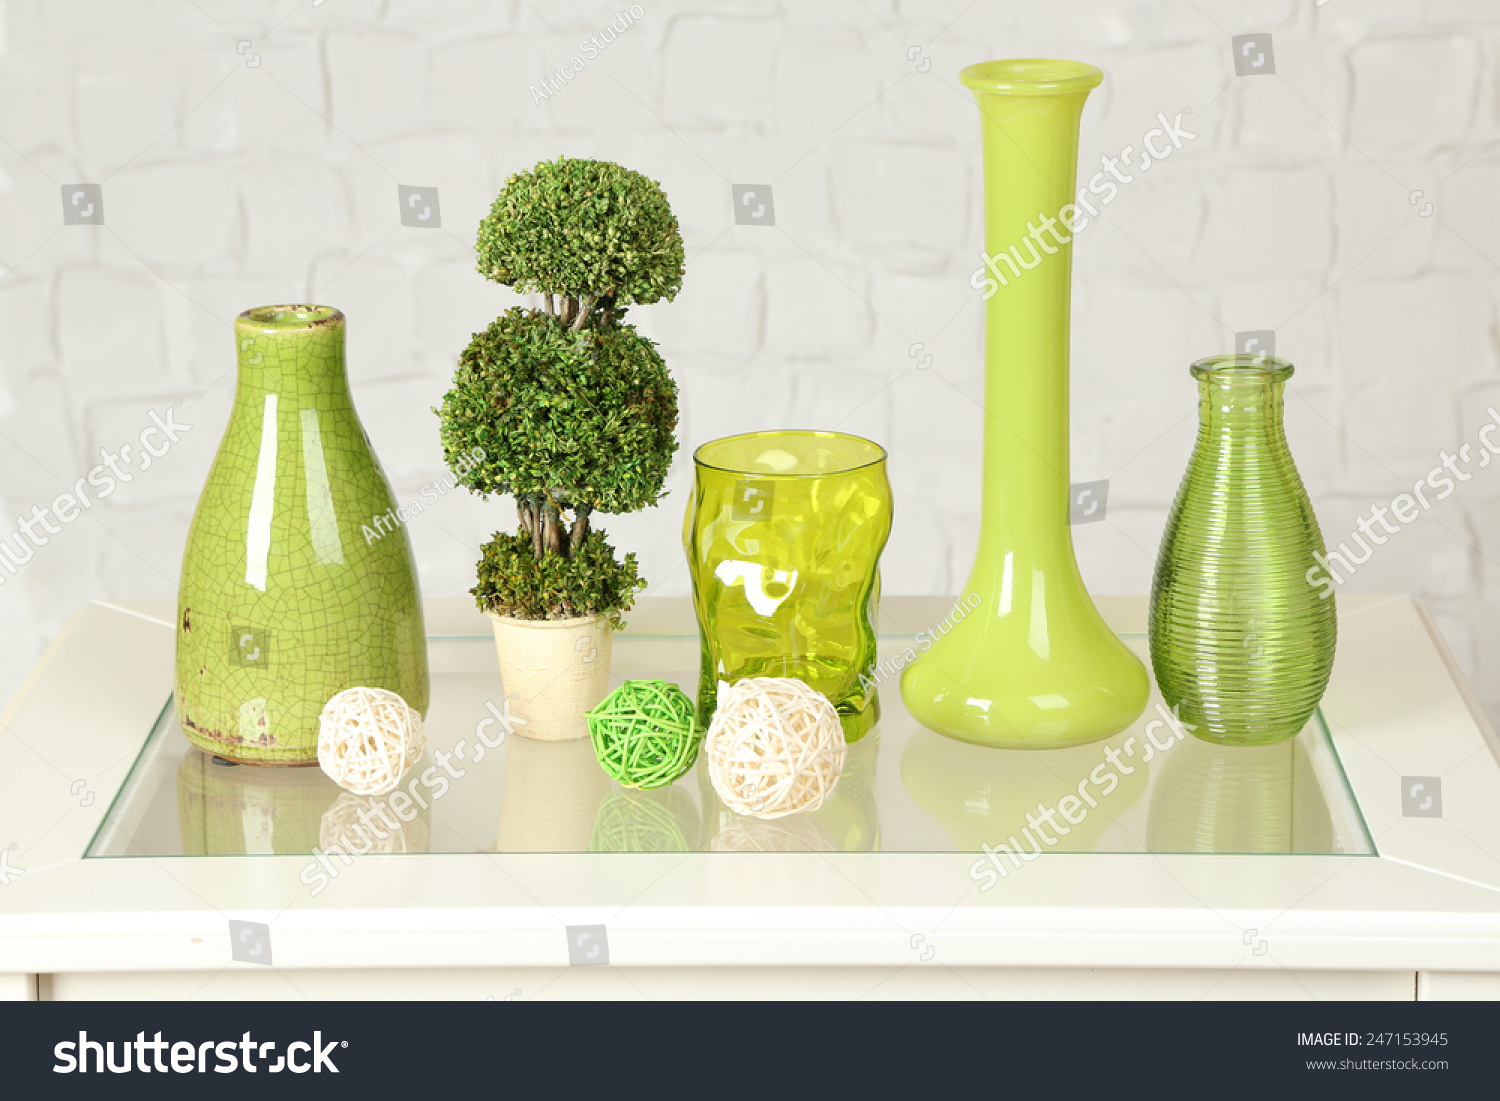 Awesome Decorative Wall Vases Composition - The Wall Art Decorations ...